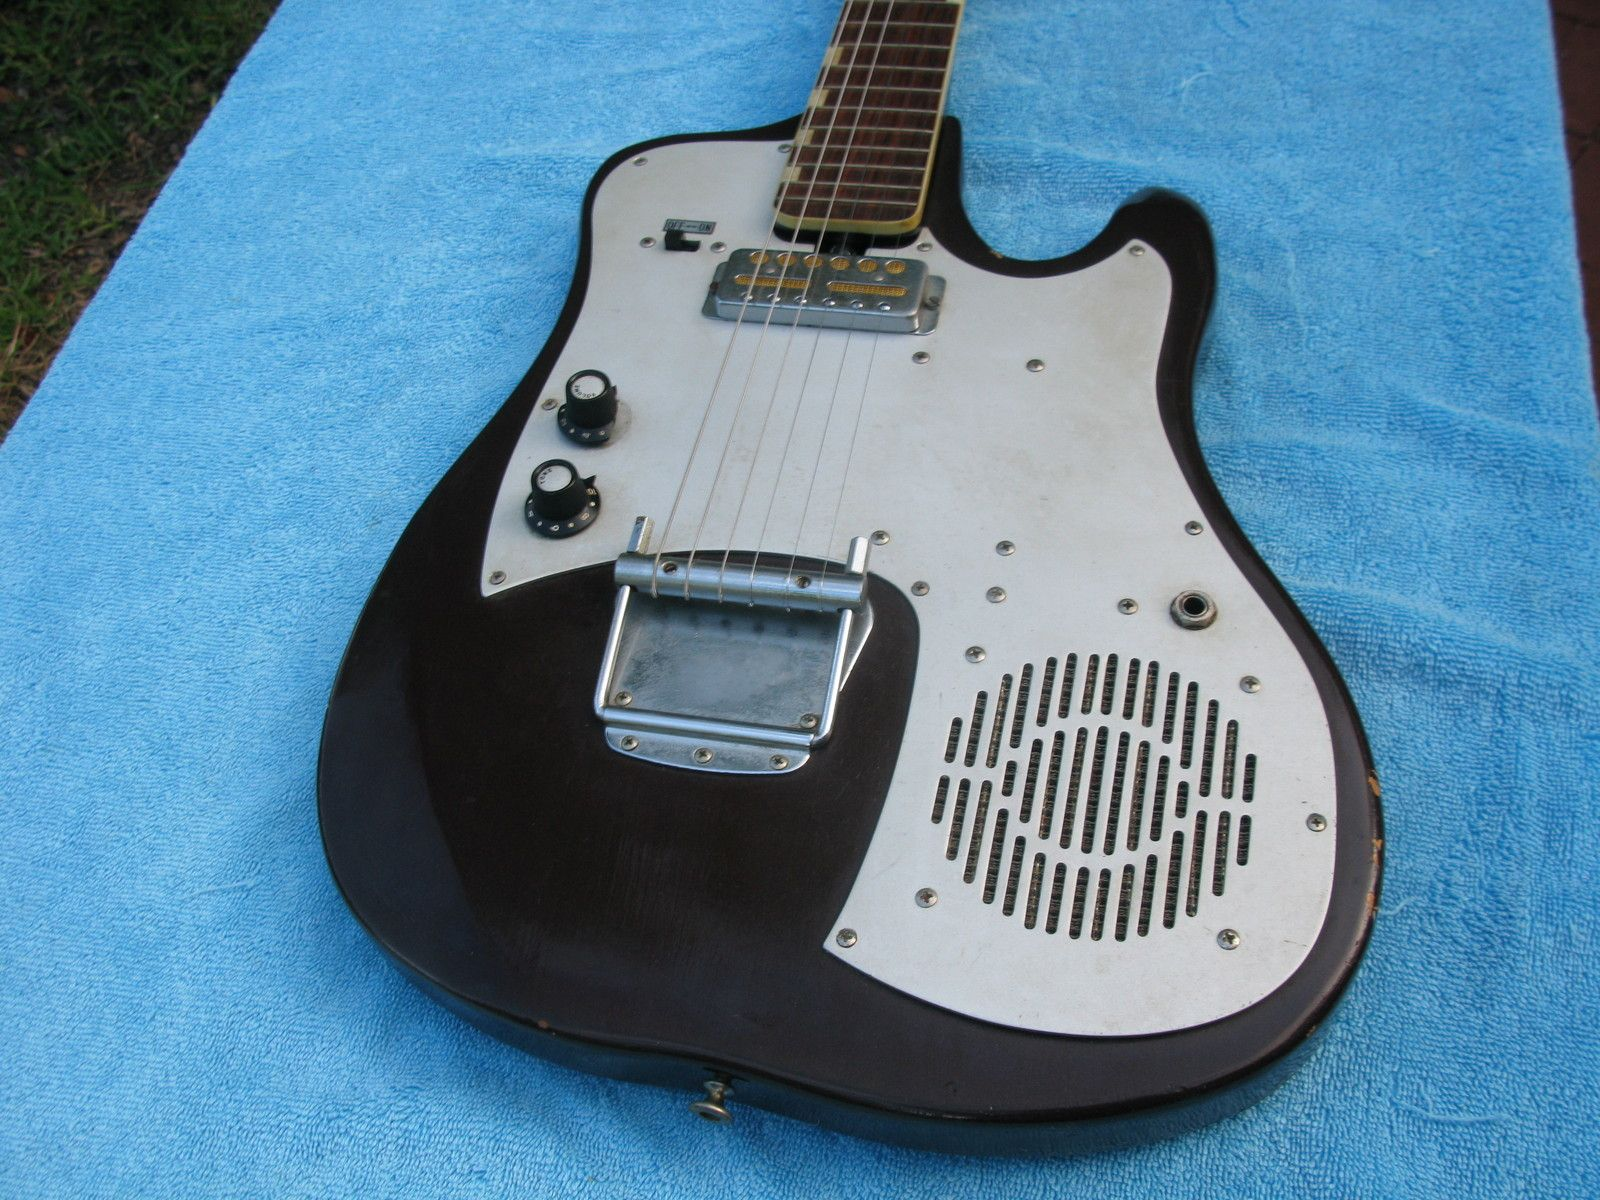 details about silvertone guitar old built in amp rare usa 1960 39 s no reserve vintage classic. Black Bedroom Furniture Sets. Home Design Ideas